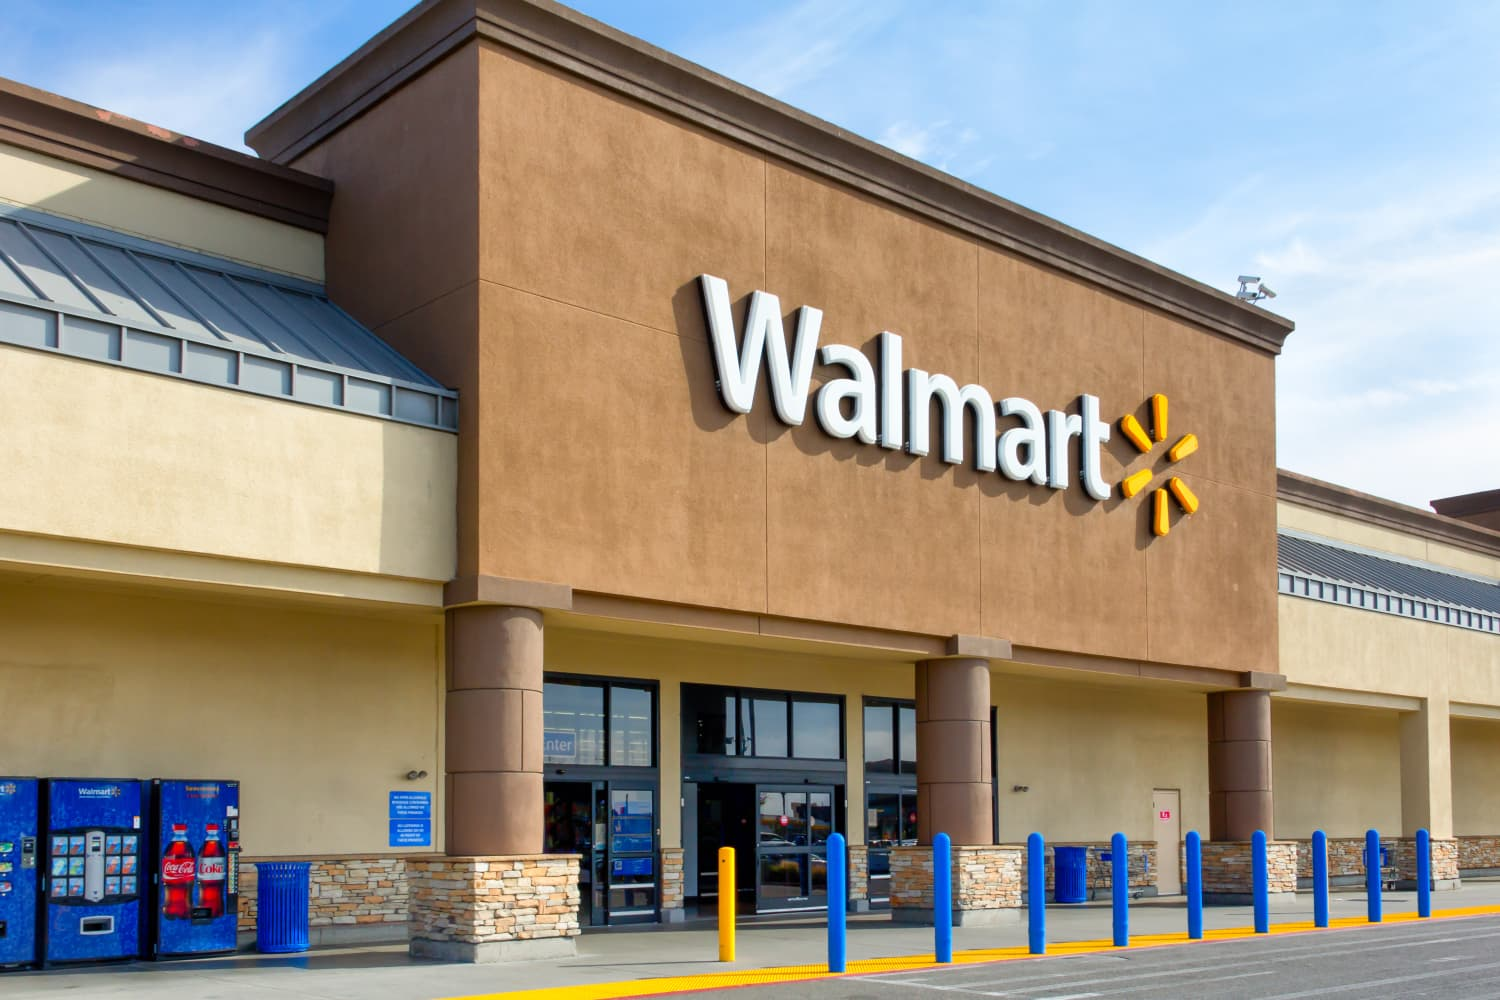 This Walmart Sale Has Tons of Amazing Last-Minute Gift Ideas for Everyone on Your List